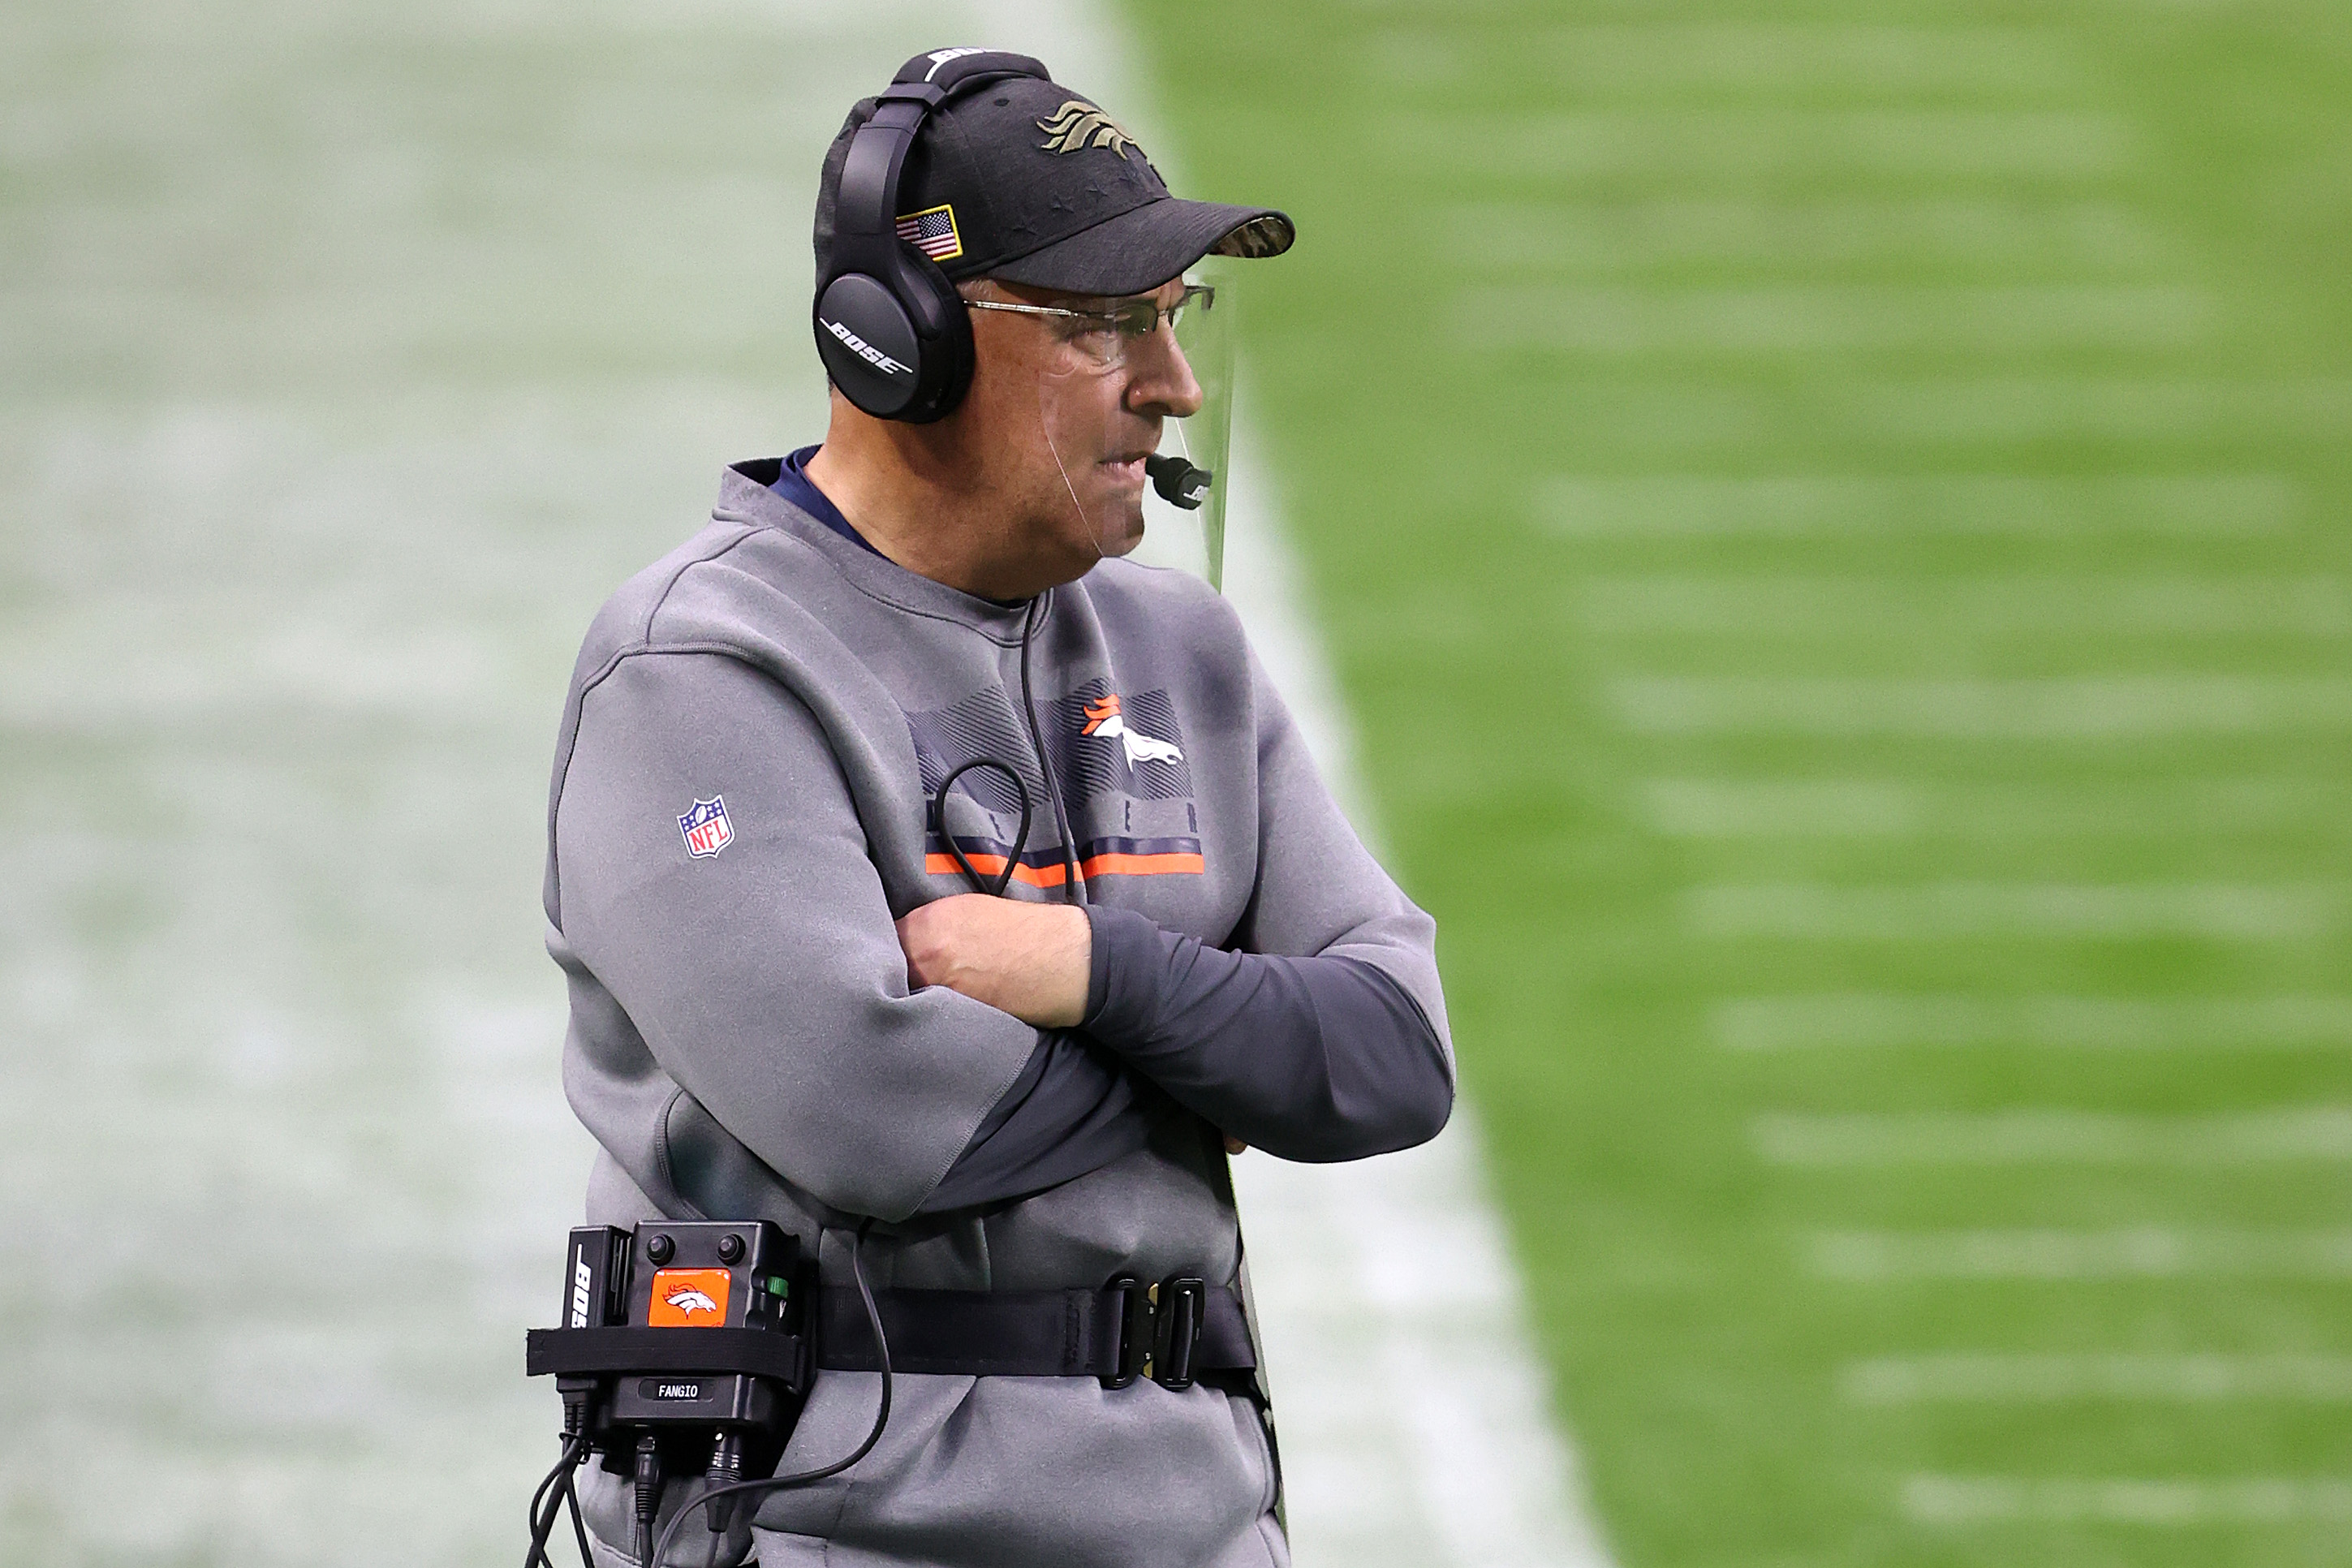 Denver Broncos coach Vic Fangio called out his quarterbacks after Sunday's debacle.